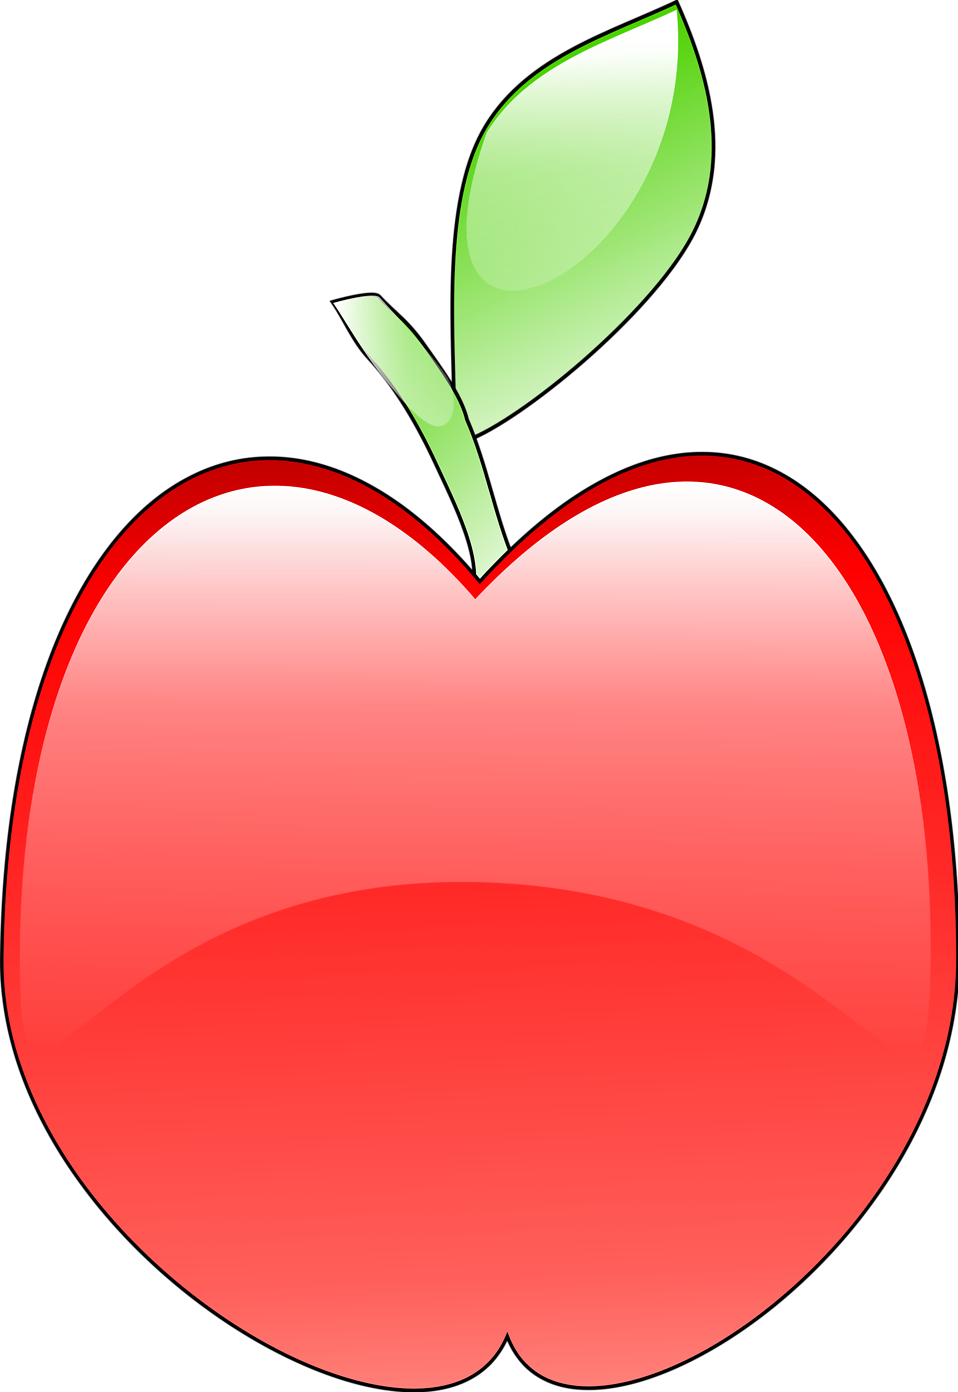 Hand with apple free clipart vector royalty free stock Apple | Free Stock Photo | Illustration of a red apple | # 11472 vector royalty free stock